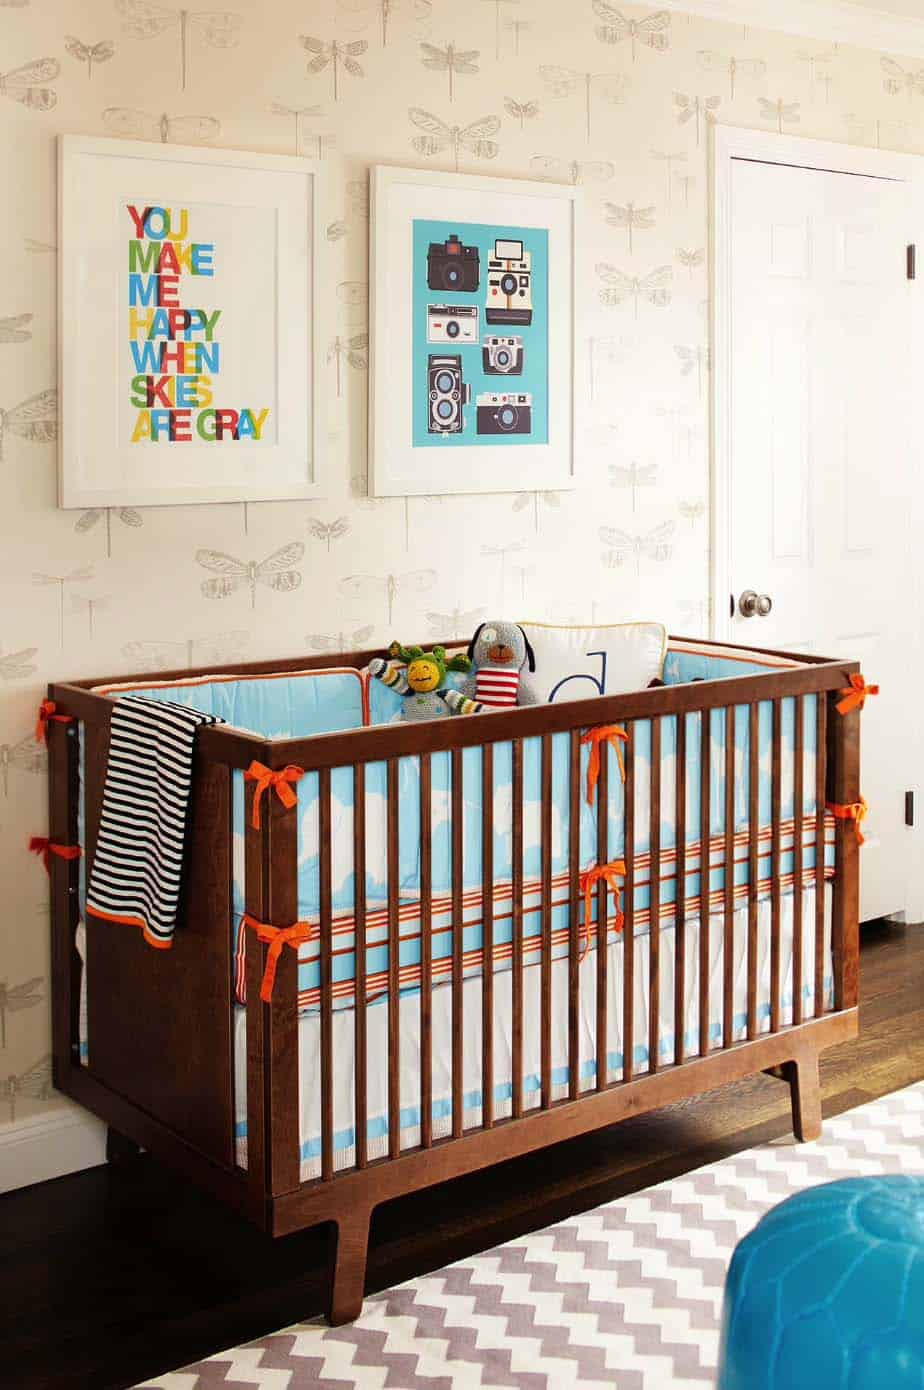 Stylish Nursery Decorating Ideas-45-1 Kindesign